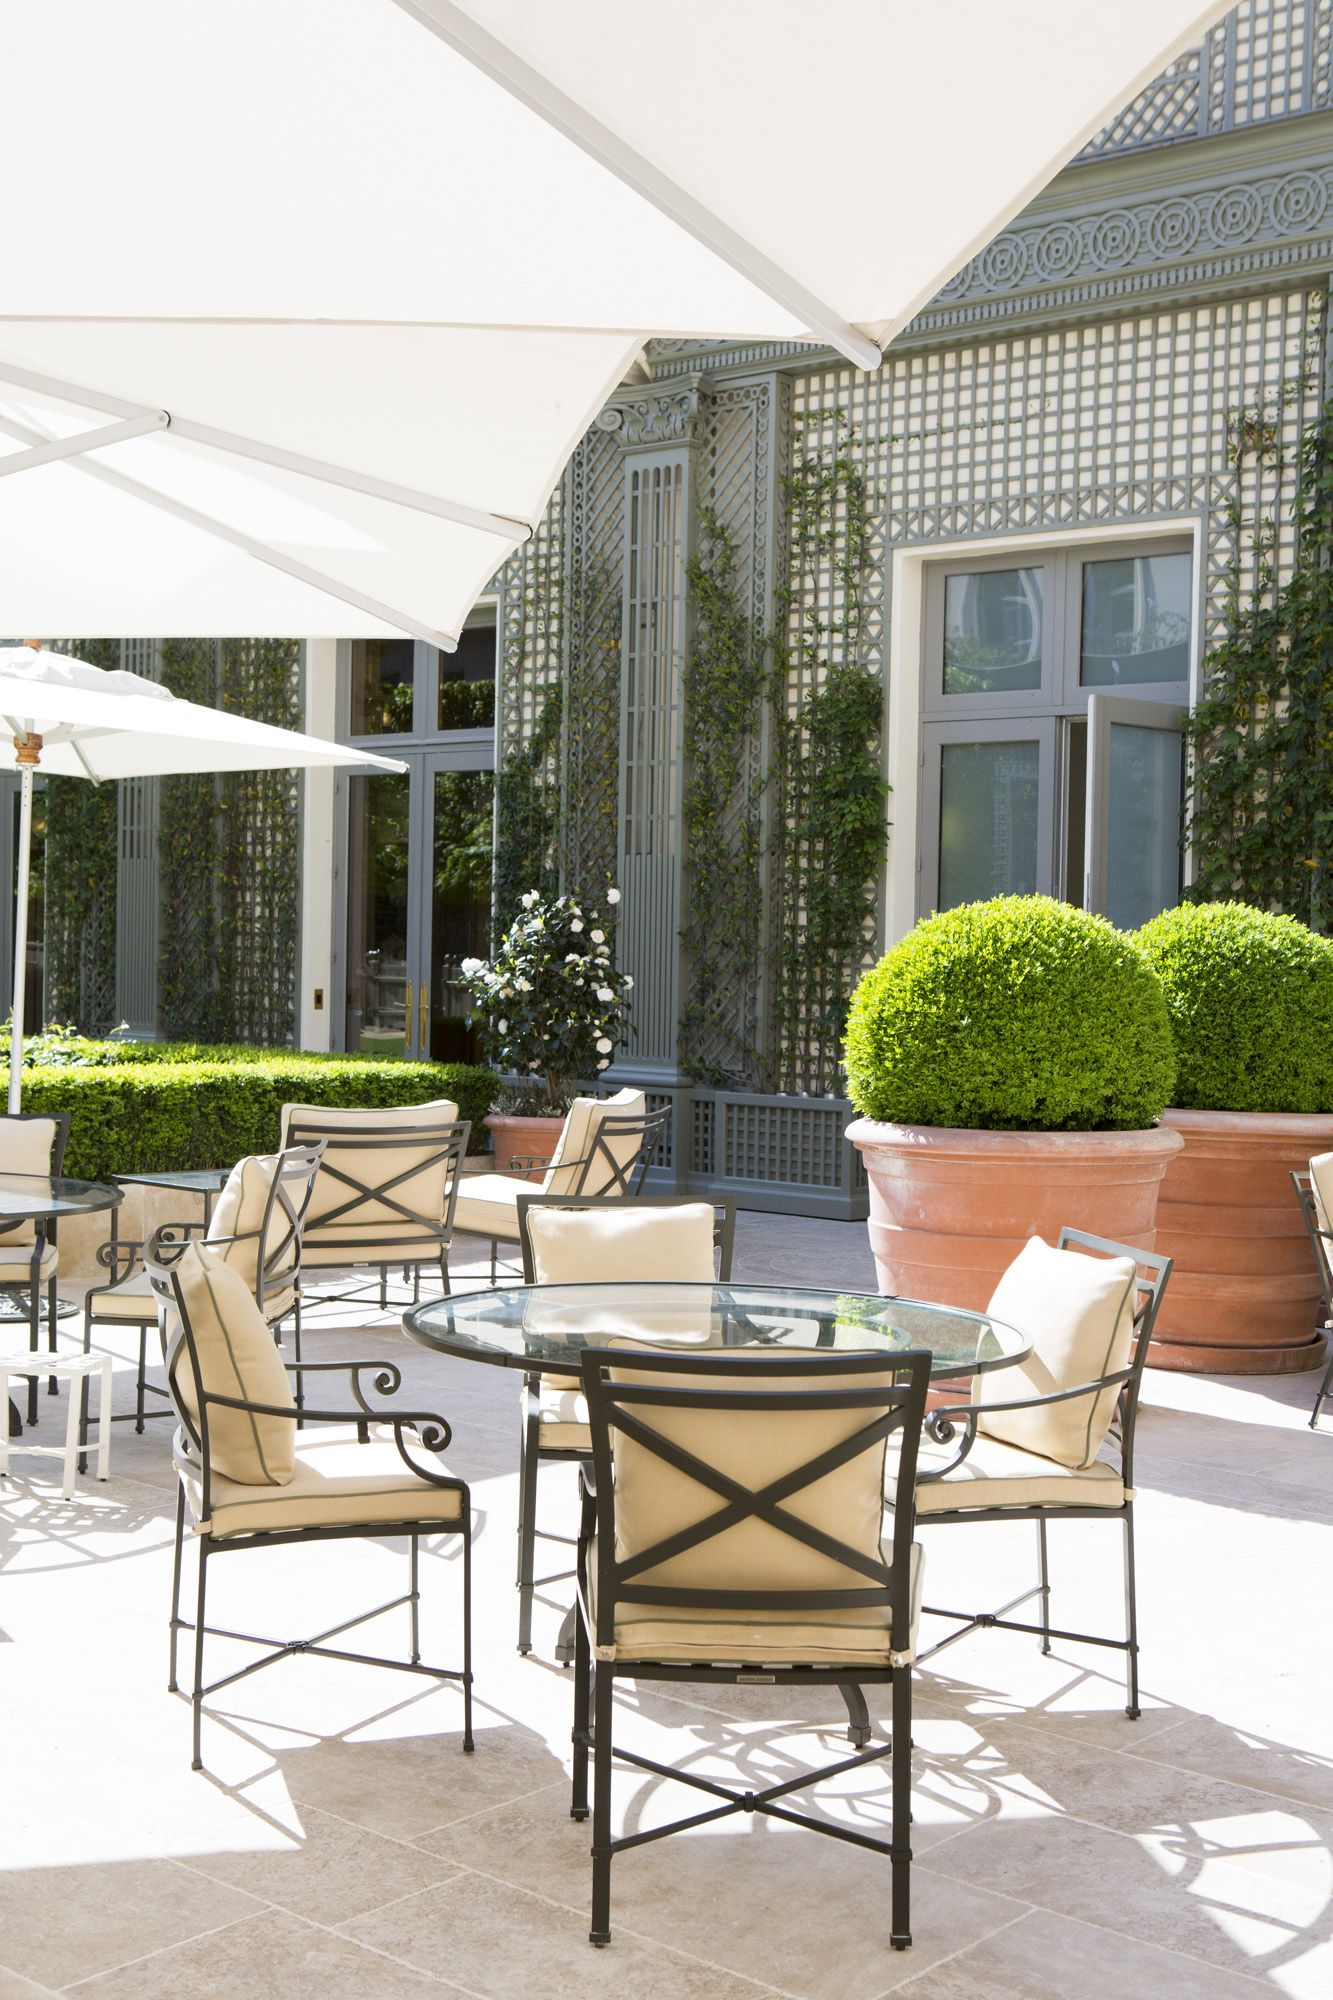 Pin by Ritz Paris on The Grand Jardin in 2019 | Patio ...